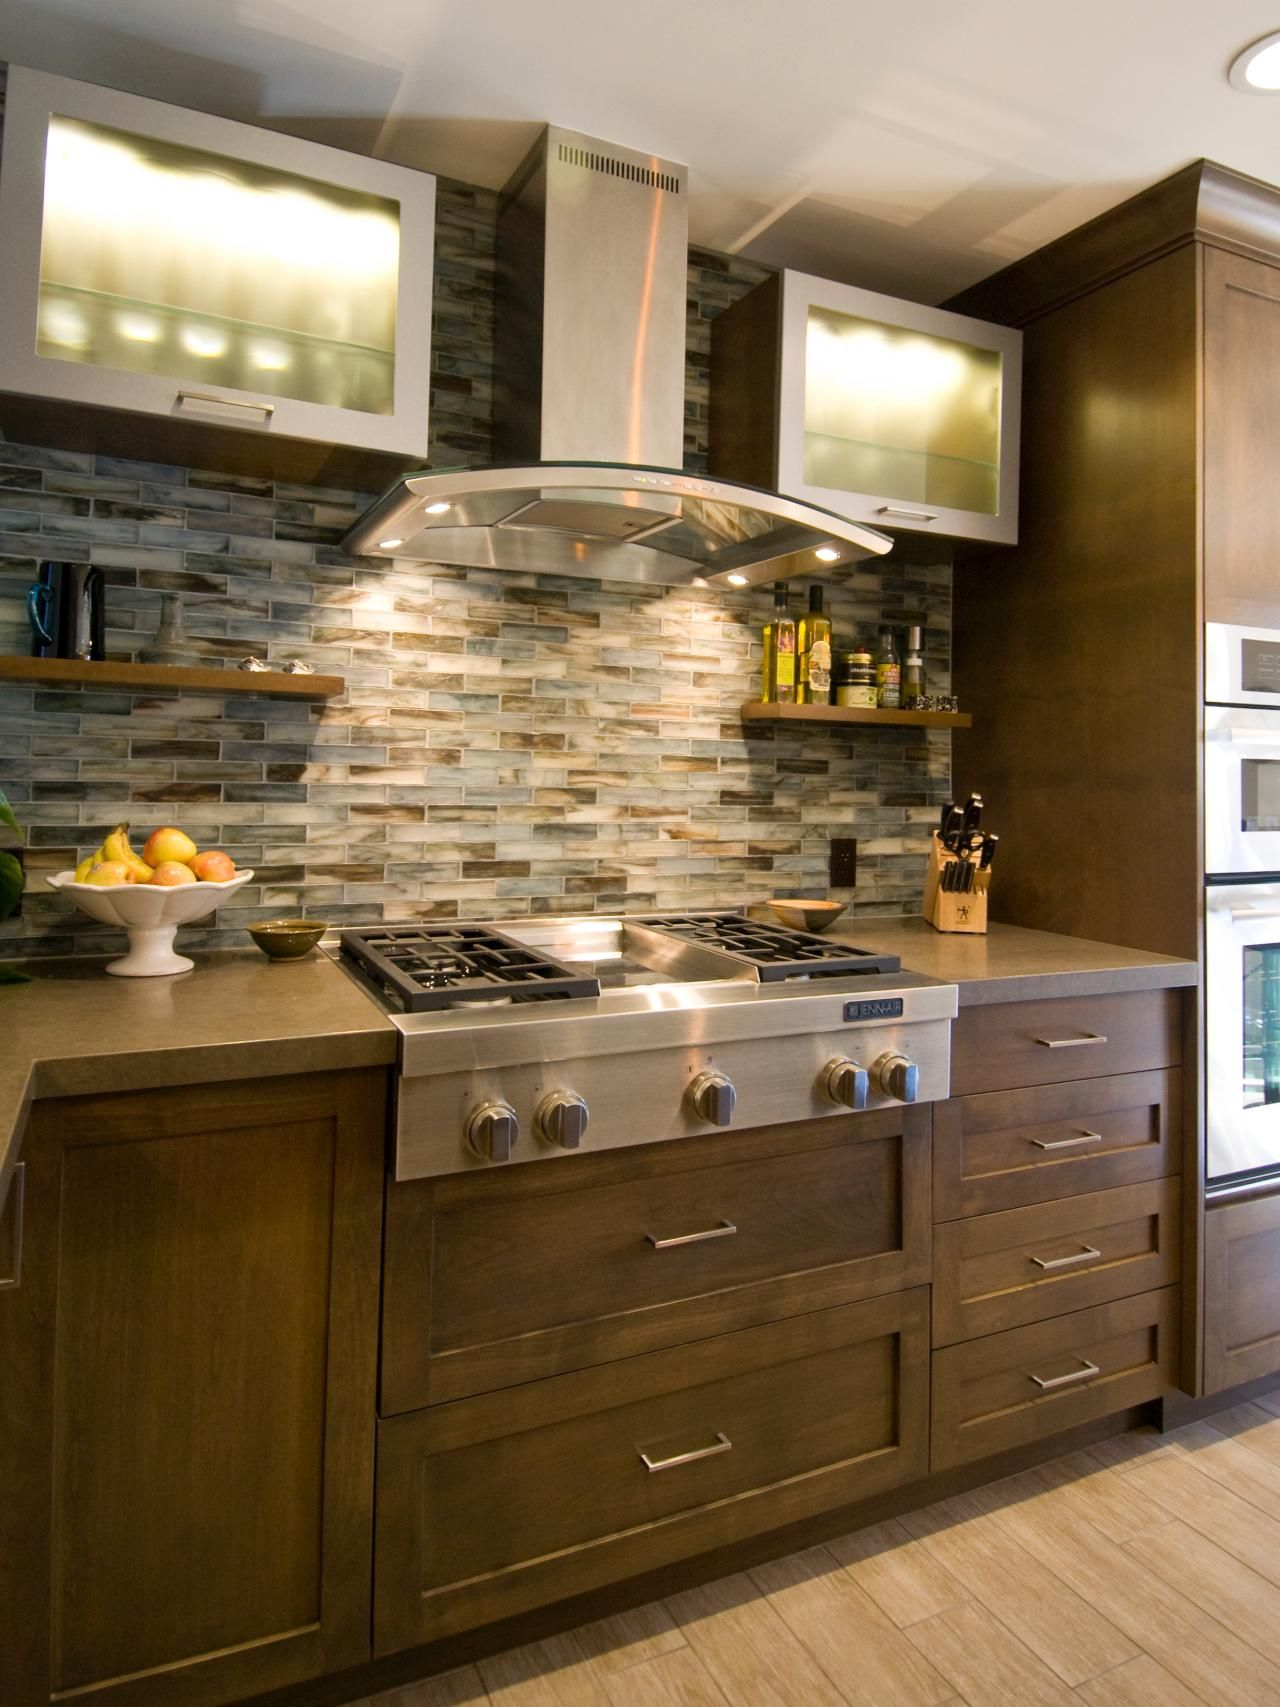 tiles for backsplash kitchen this bold mosaic tile backsplash open shelving and new appliances make this contemporary 4831